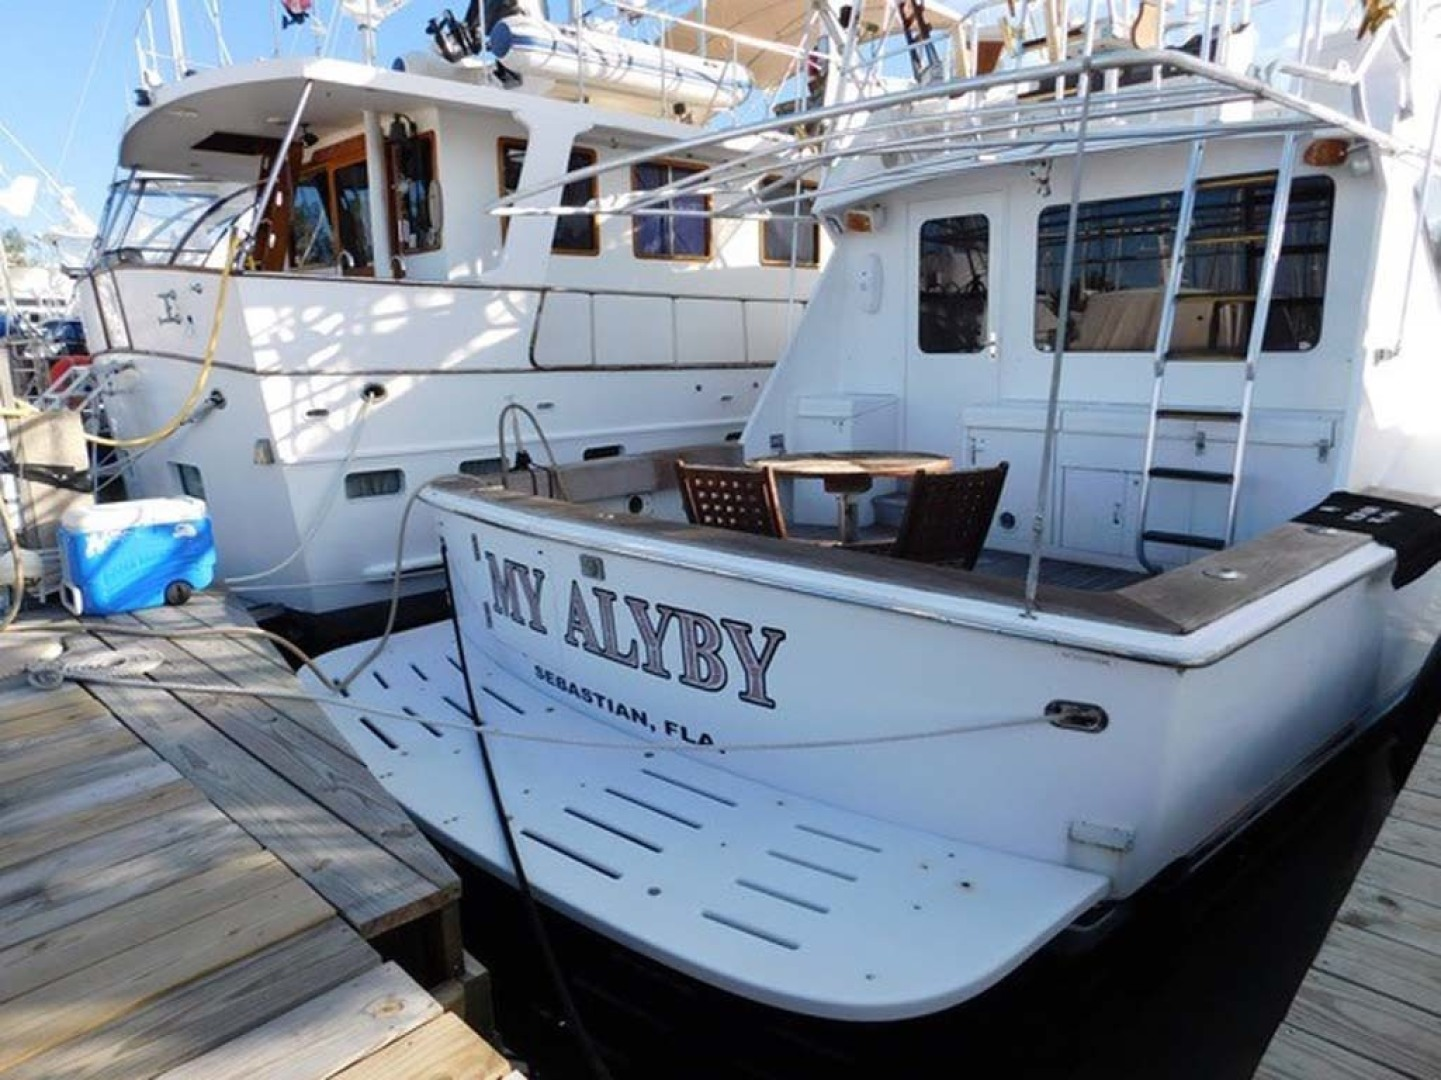 Hatteras-Convertible 1986-My Alyby Merritt Island-Florida-United States-Stern View-1294870 | Thumbnail